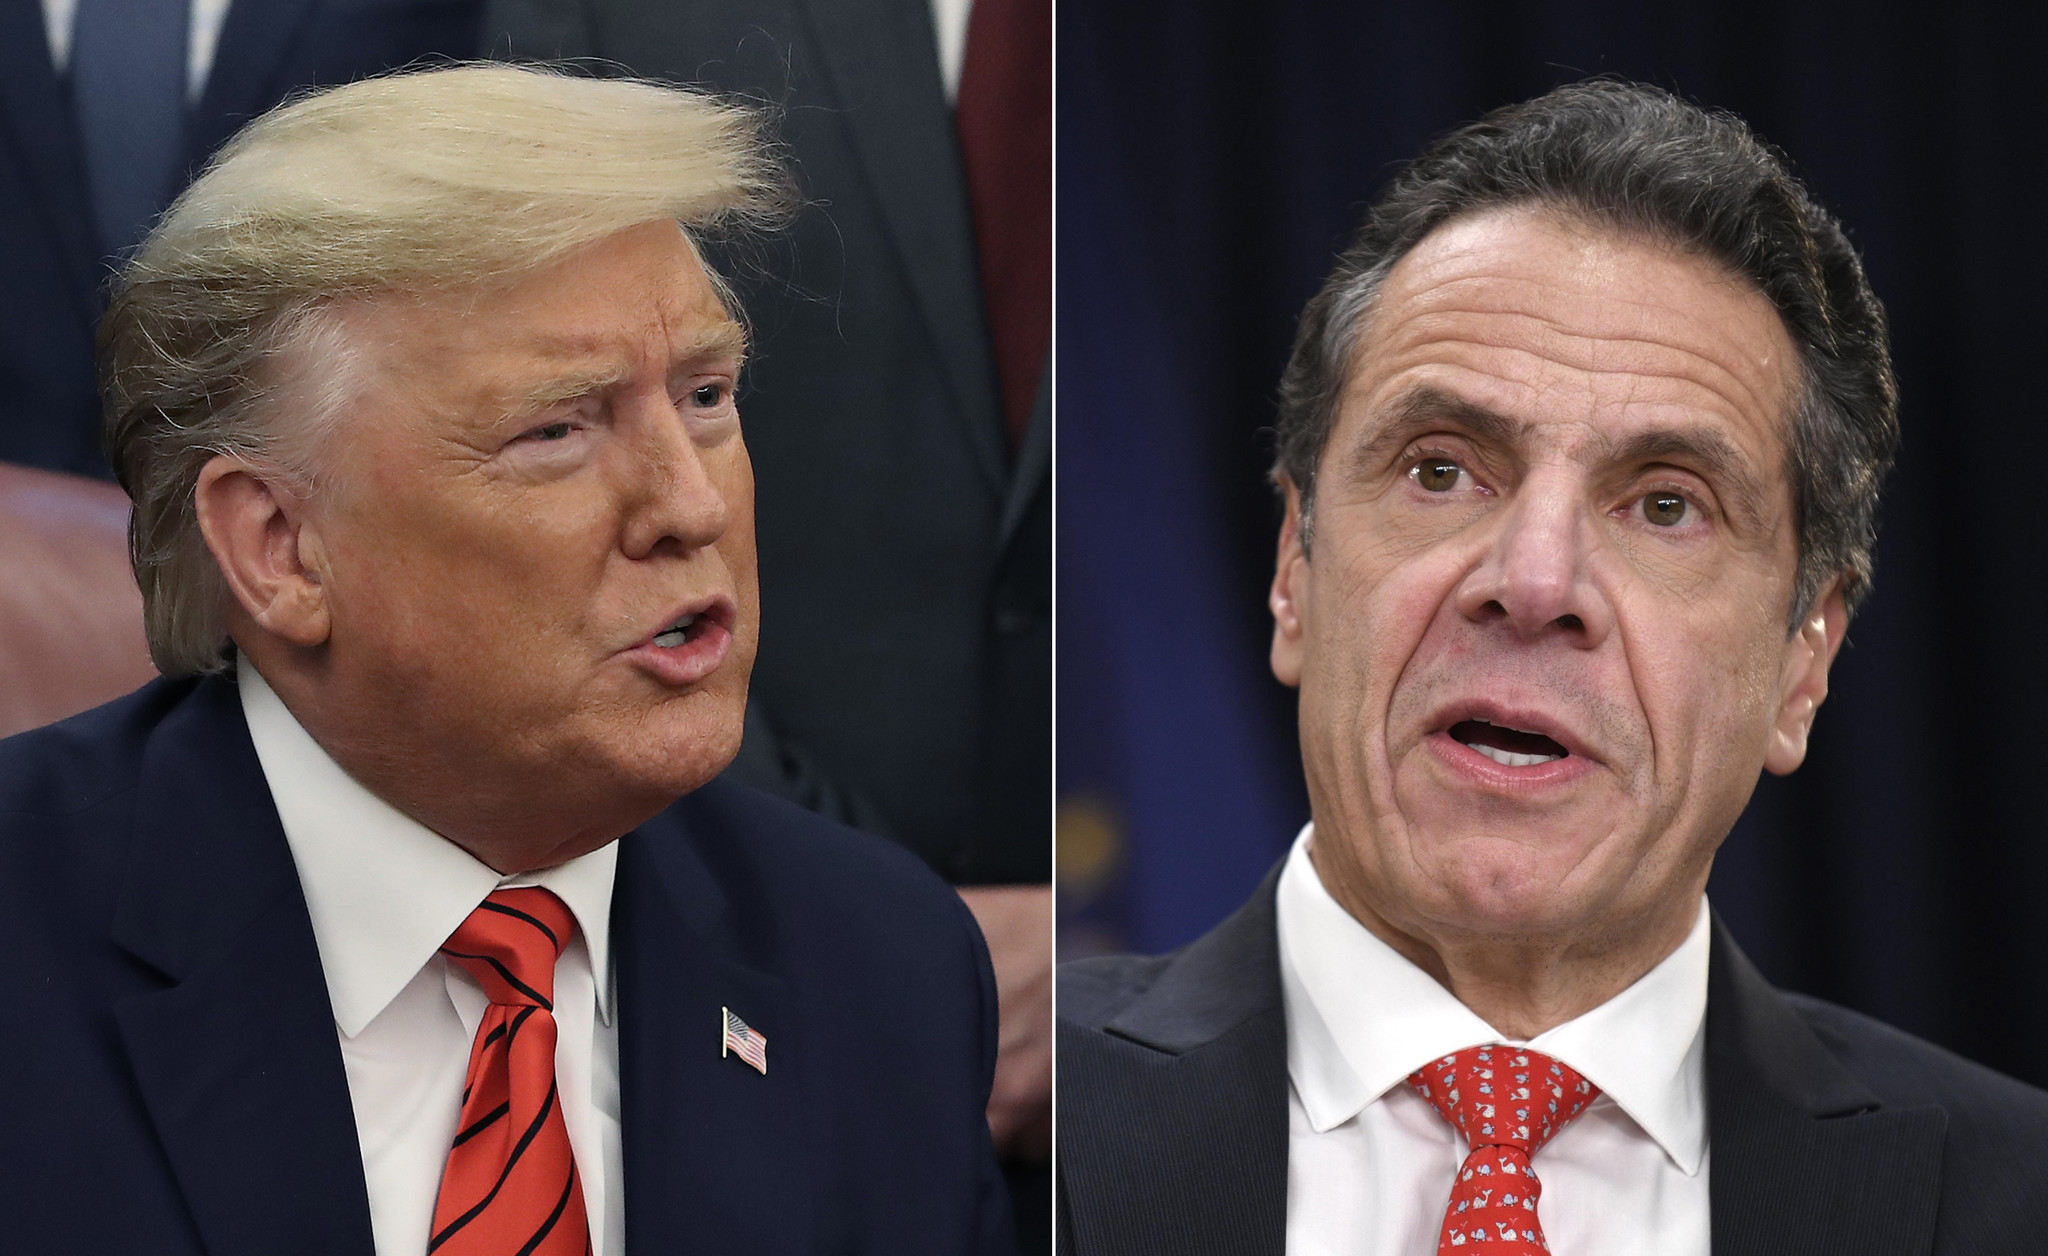 Impasse: Cuomo and Trump fail to find a solution to travel program and immigration concerns